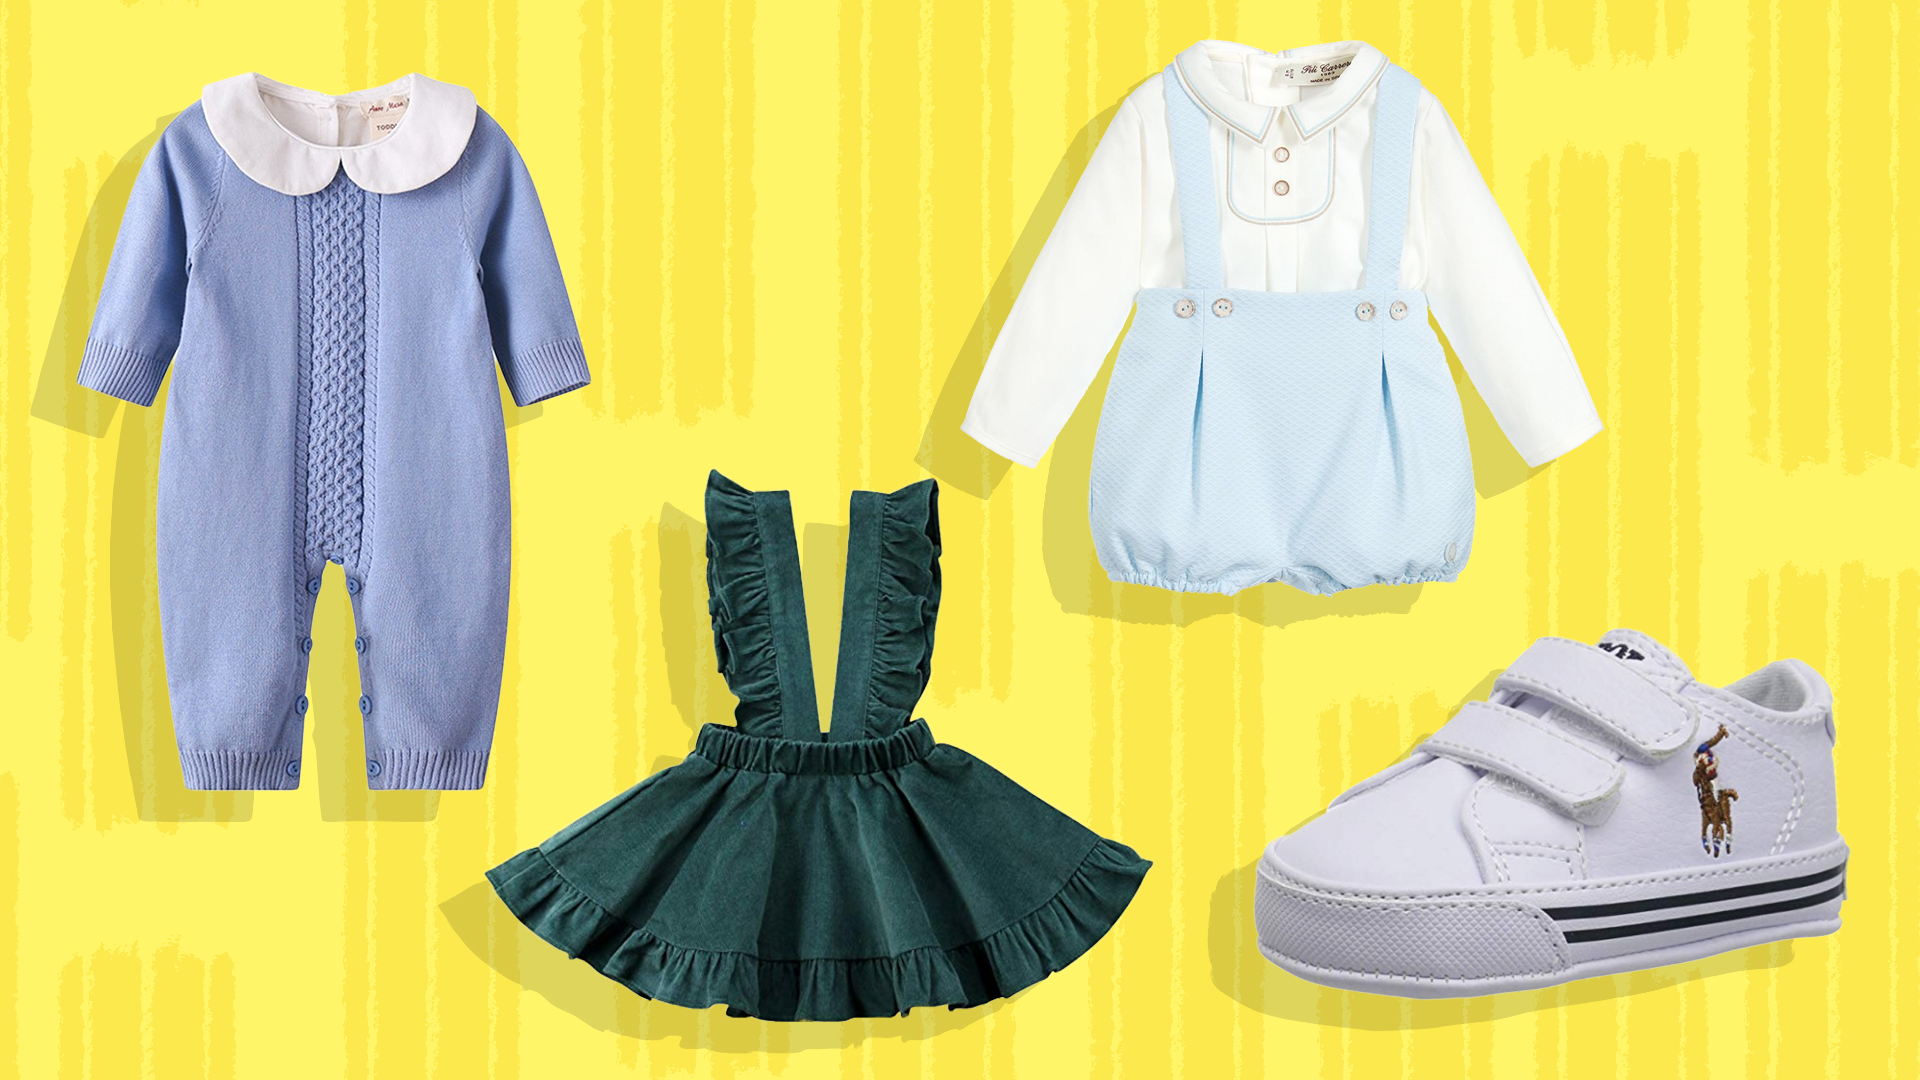 Royal Baby Clothing: Fancy Clothes Fit for a Little Prince(ss